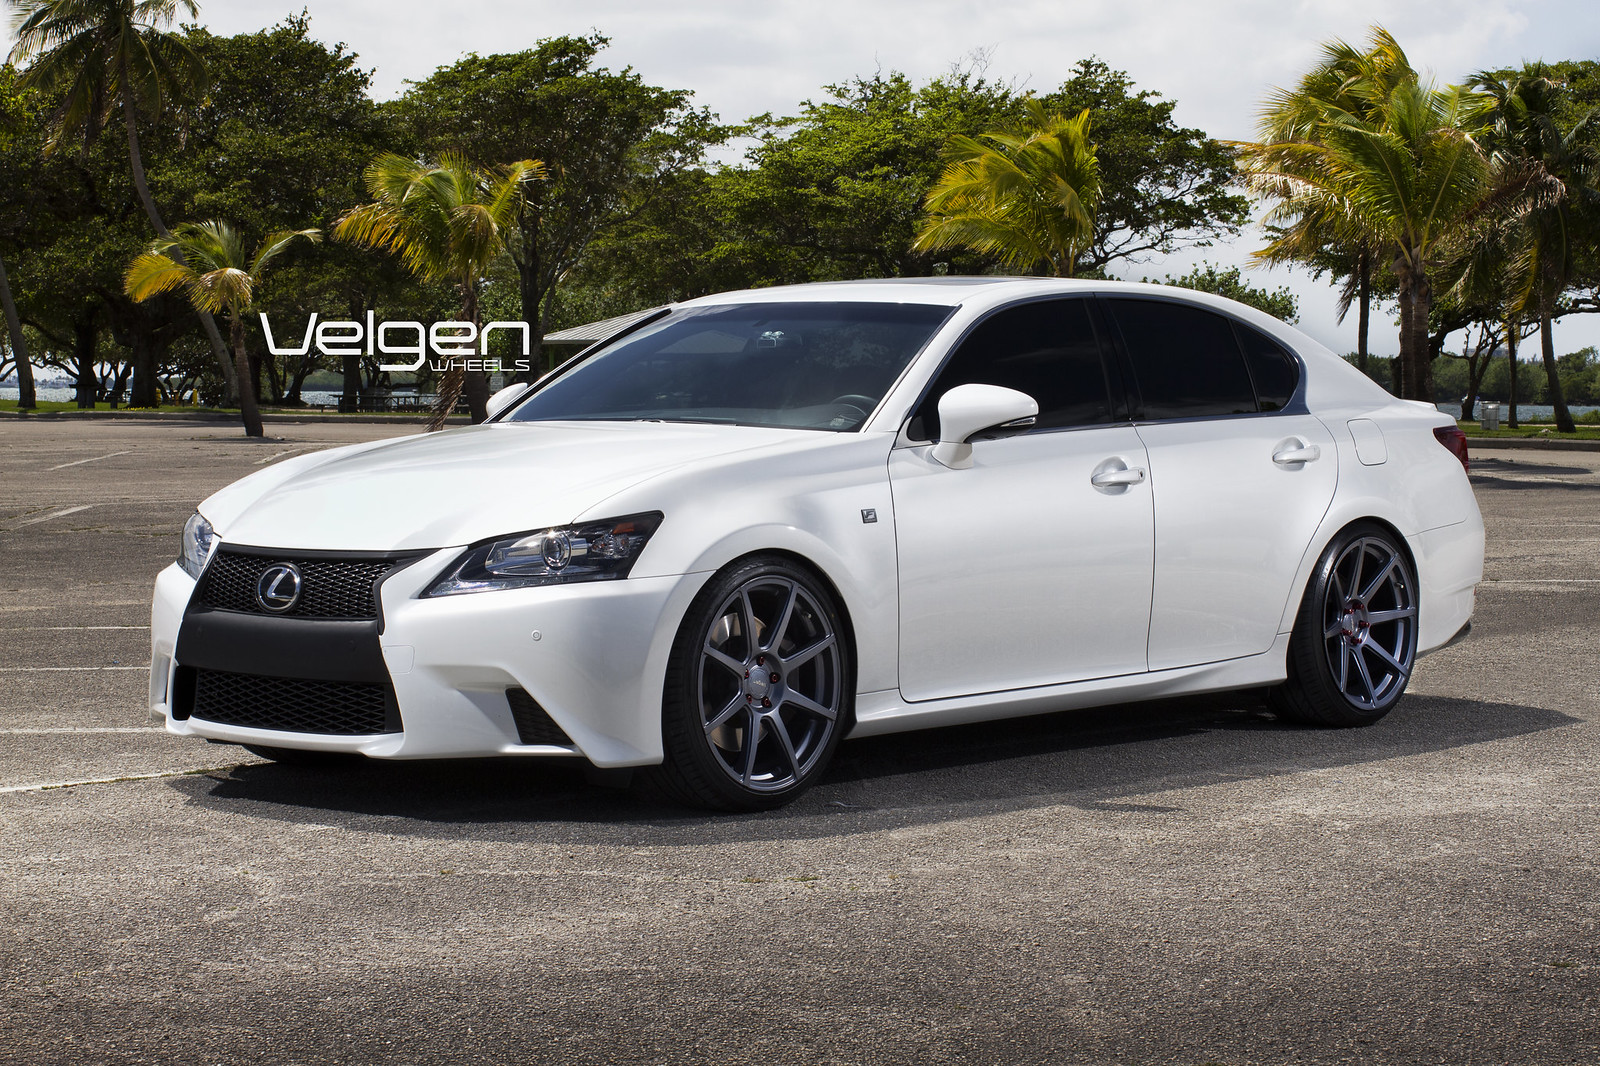 lexus gs350 f sport velgen wheels vmb8 clublexus lexus forum discussion. Black Bedroom Furniture Sets. Home Design Ideas